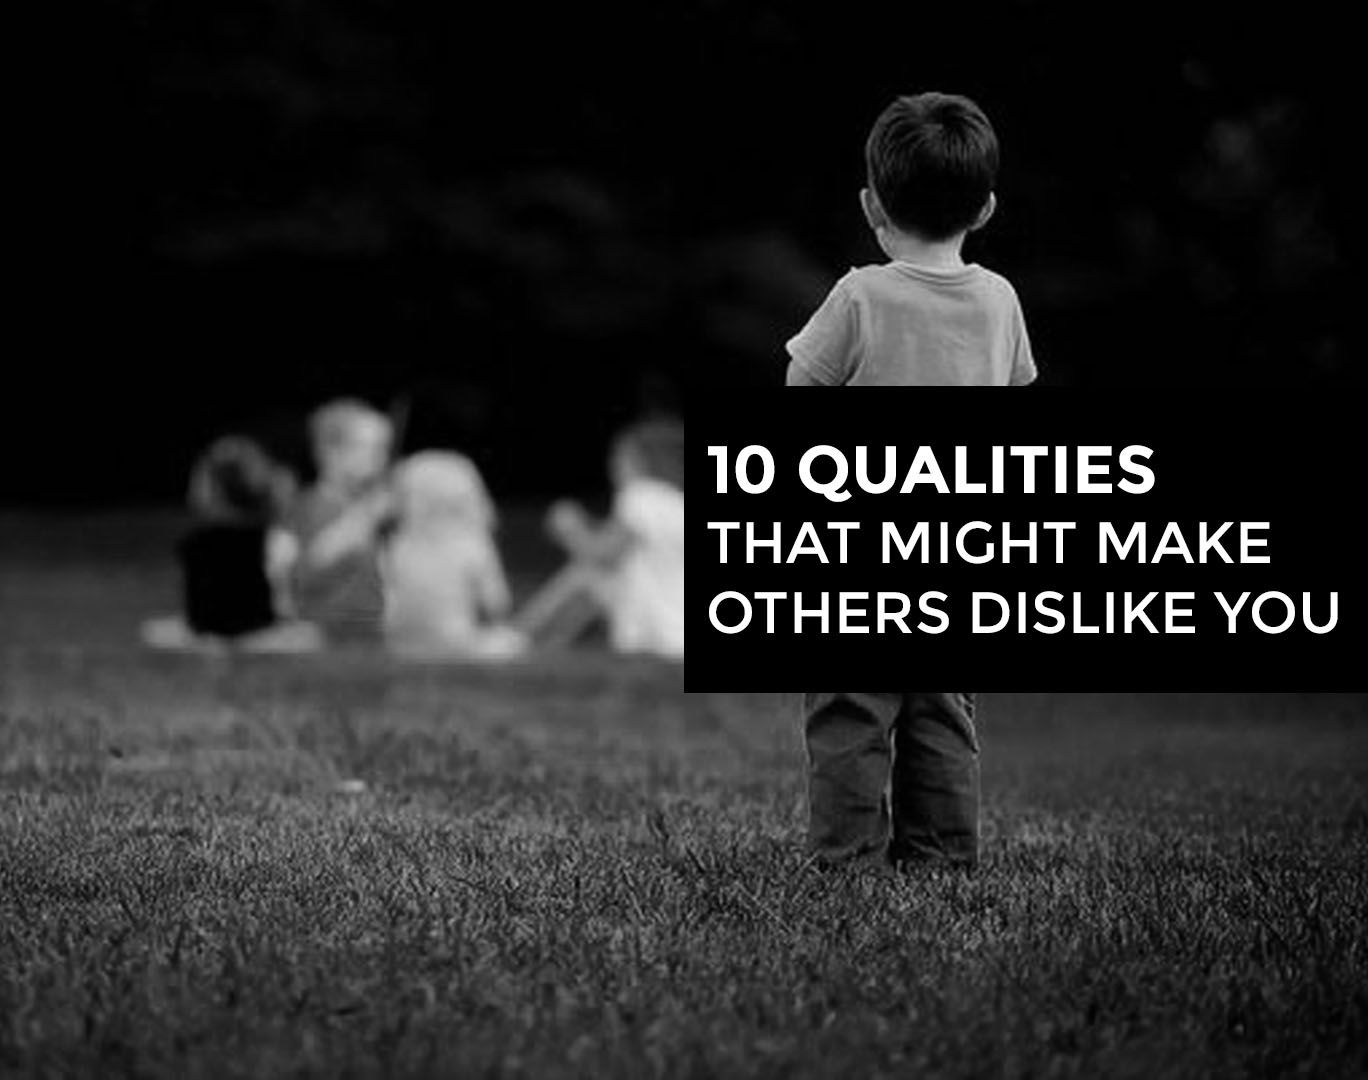 10-qualities-others-dislike